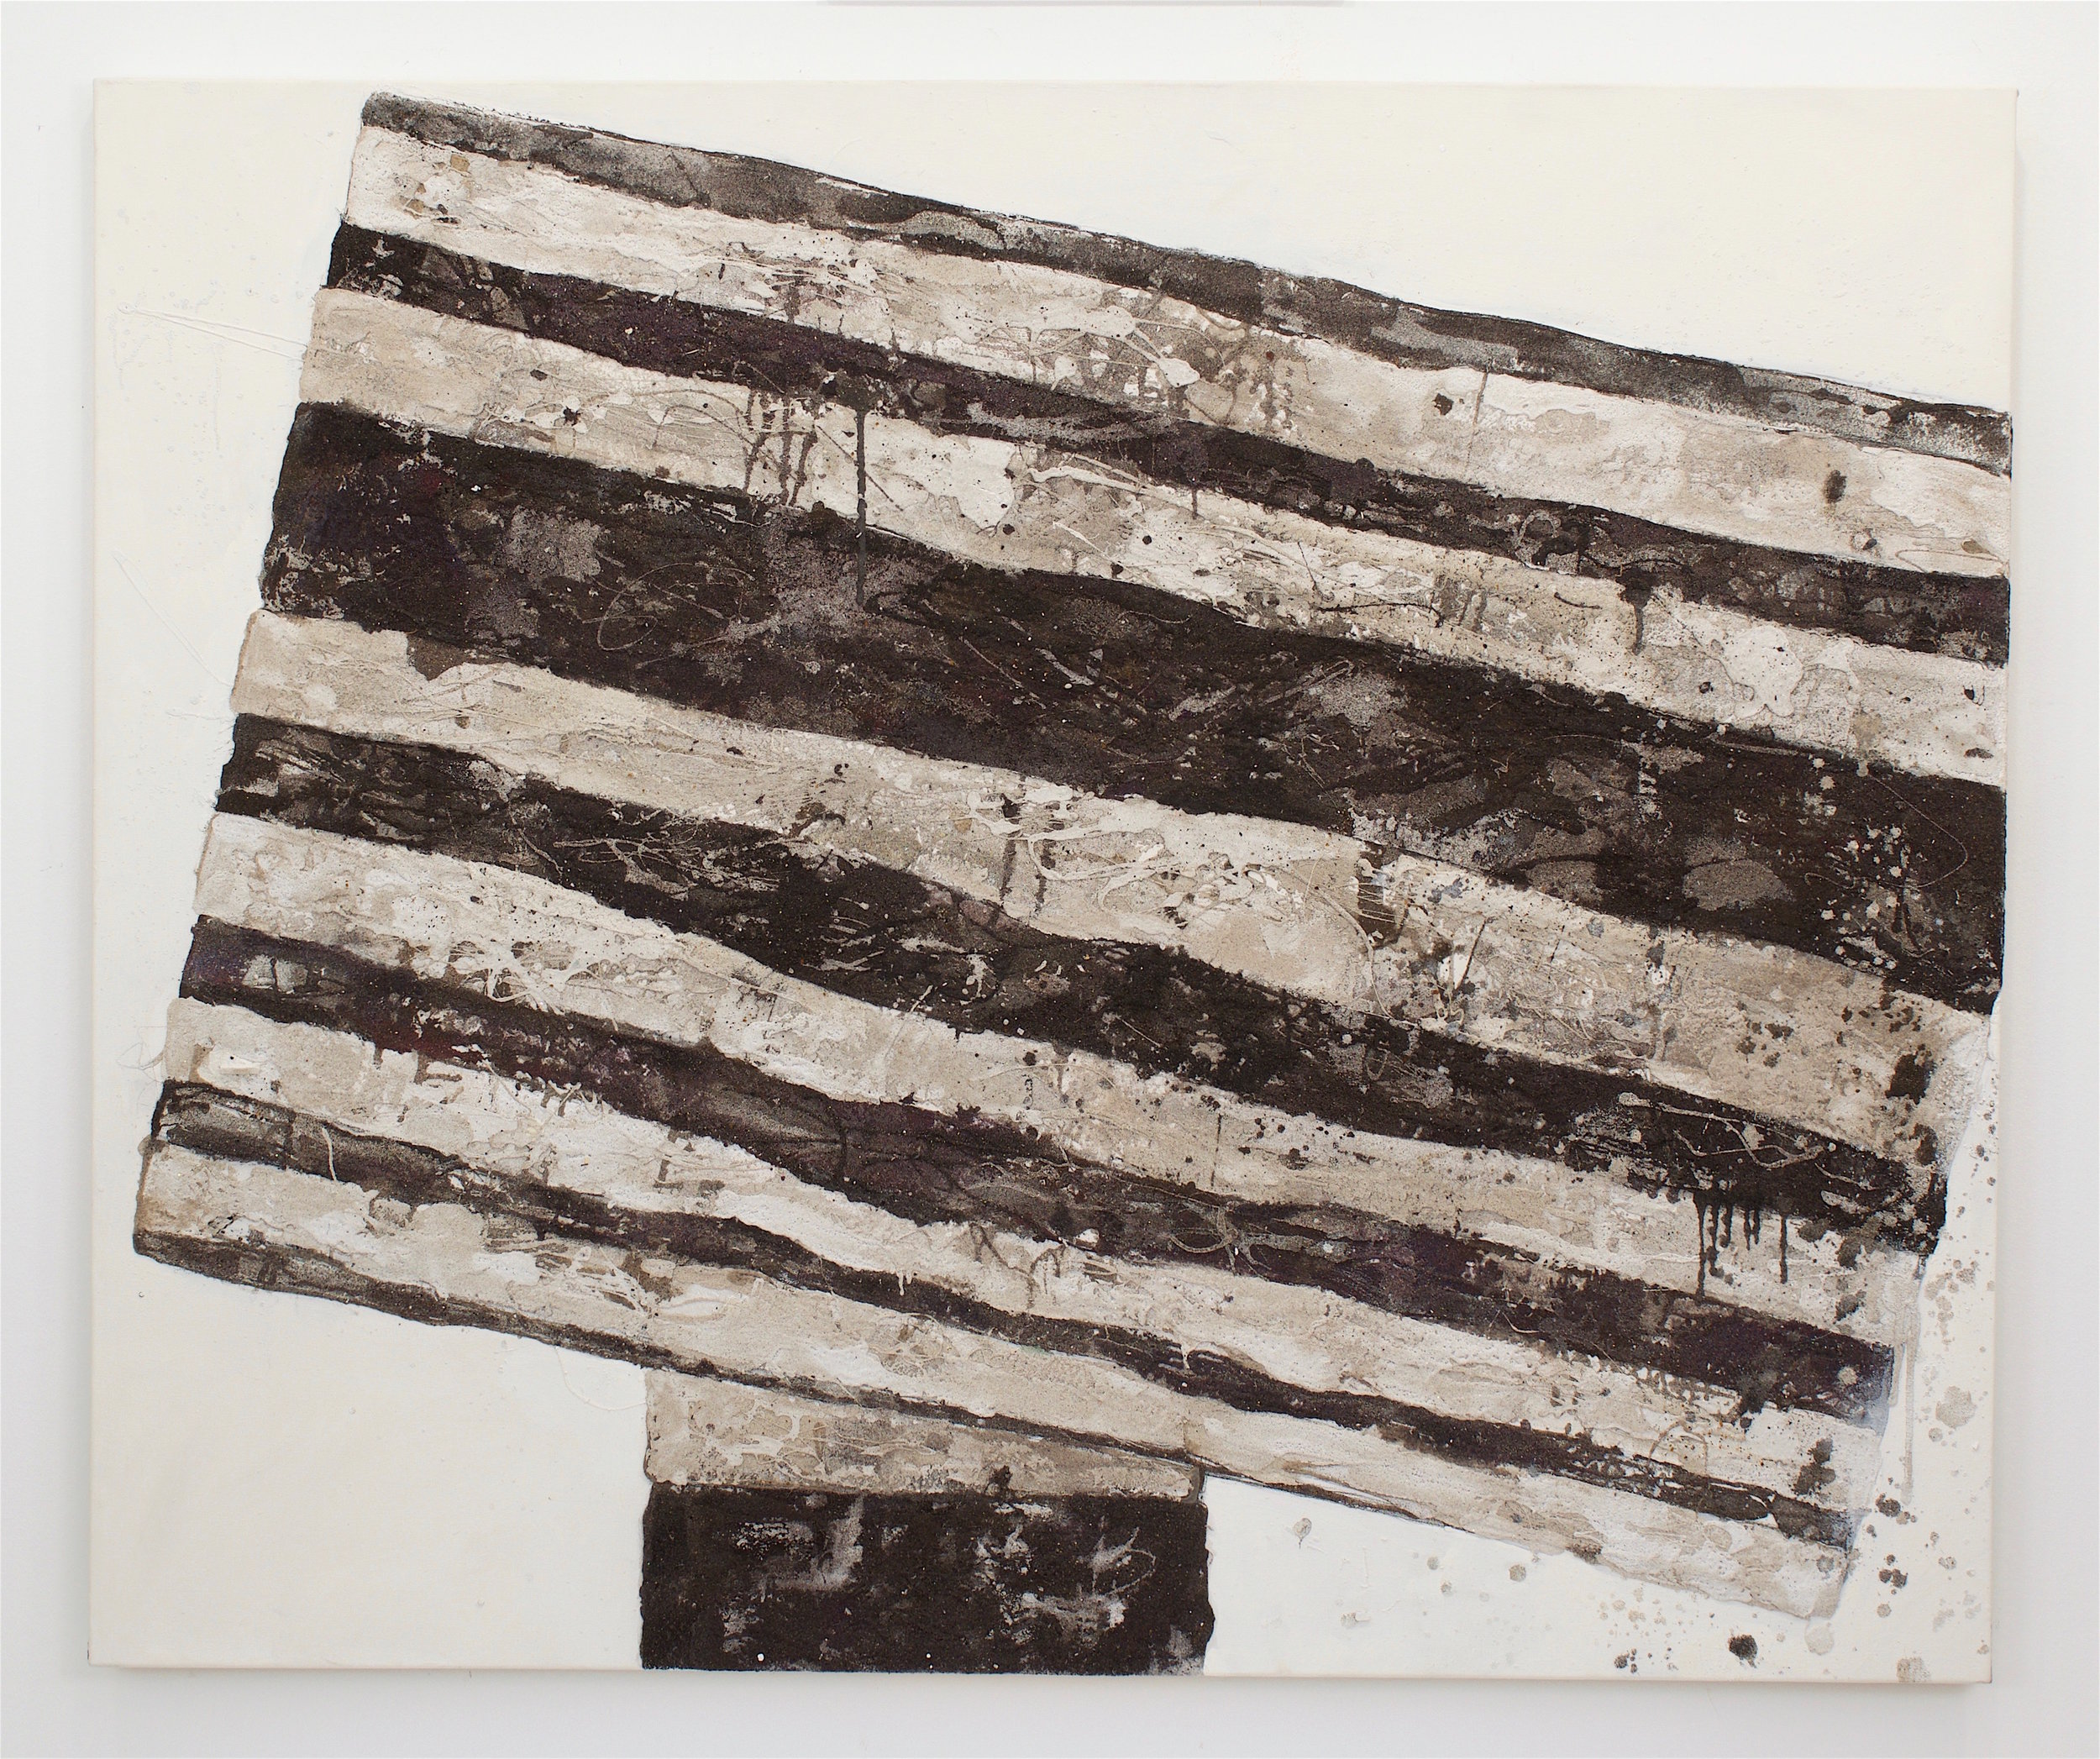 Mark Van Wagner, Forever in, Mate, 2016. Sand debris polymers gesso on canvas, 60x72 in.